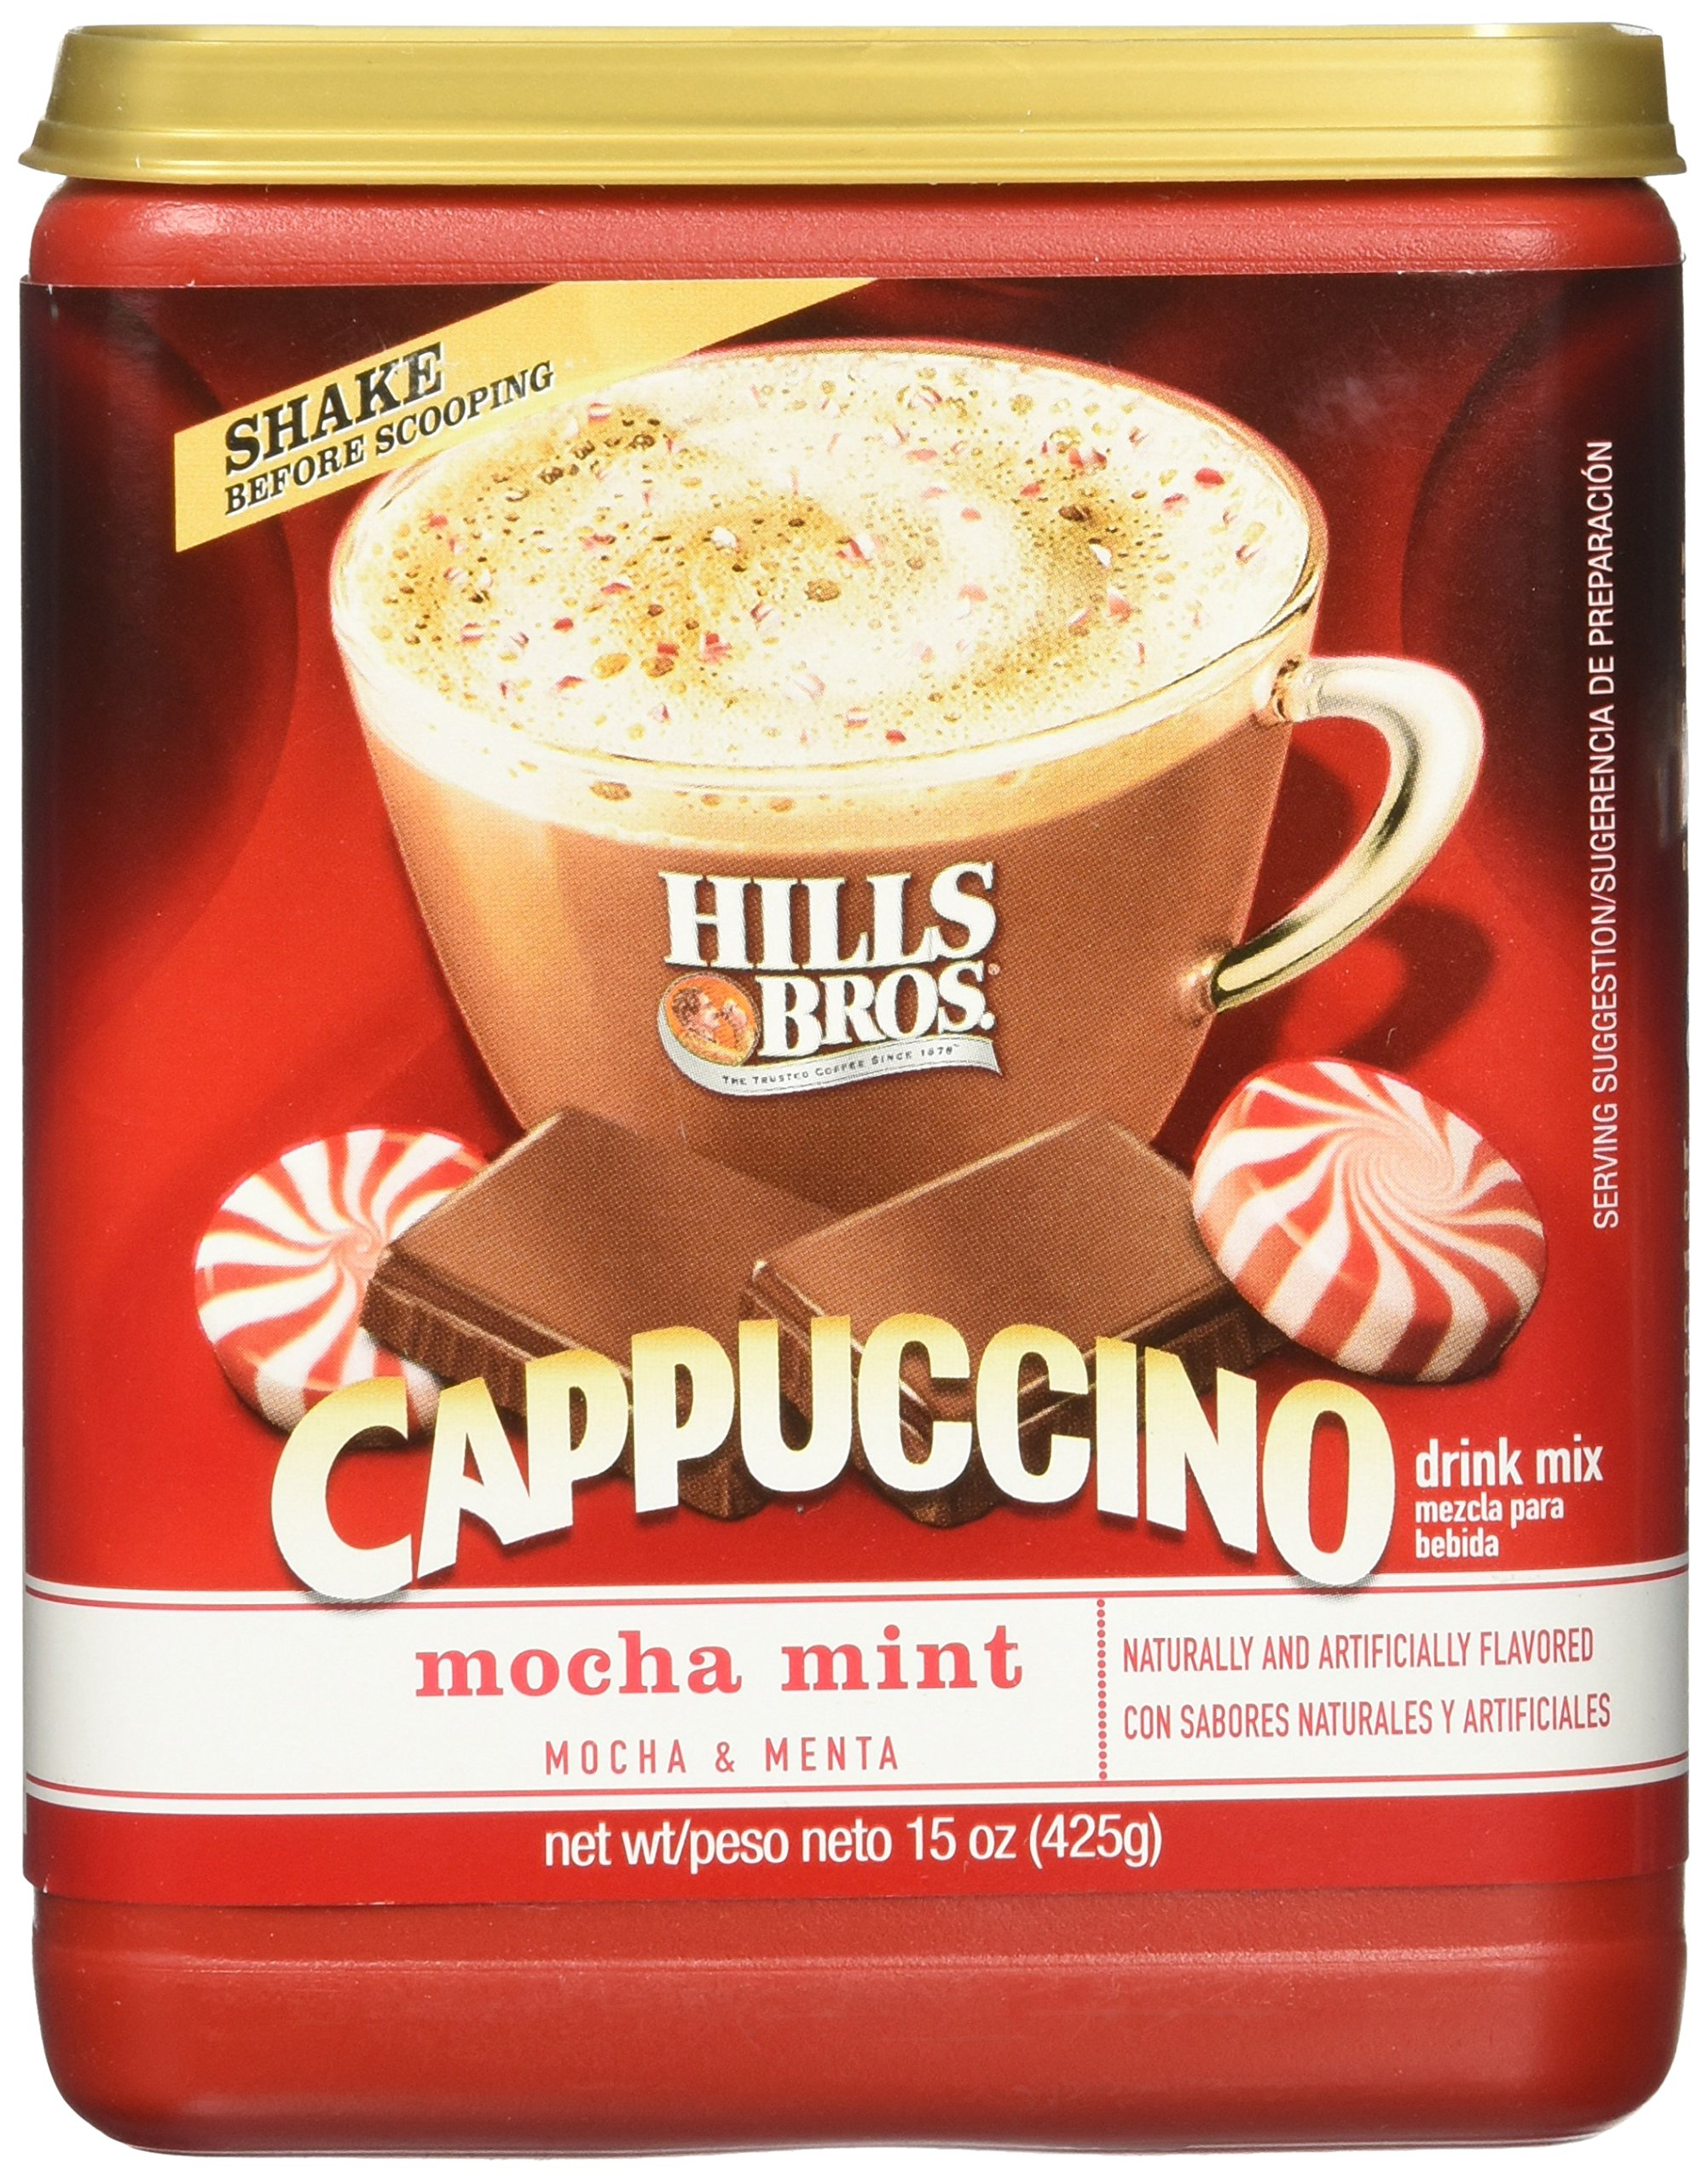 Hills Bros., Cappuccino, Mocha Mint, 15oz Canister (Pack of 2)